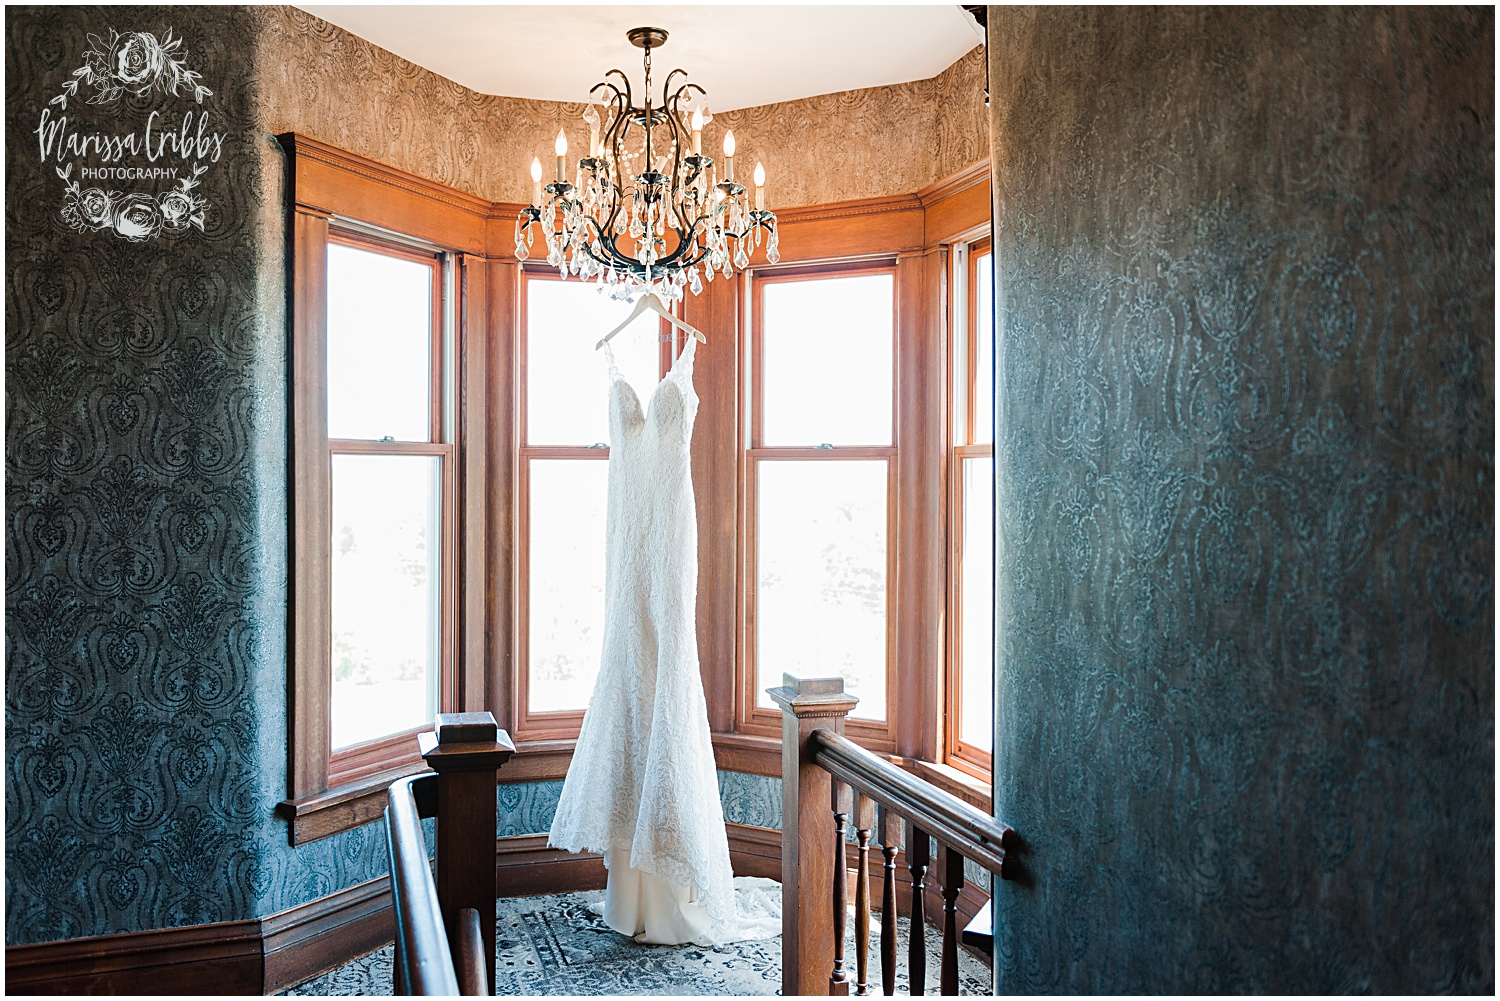 JESSICA & MARK MARRIED SNEAK PEEKS | 1890 EVENT SPACE WEDDING | MARISSA CRIBBS PHOTOGRAPHY_7763.jpg